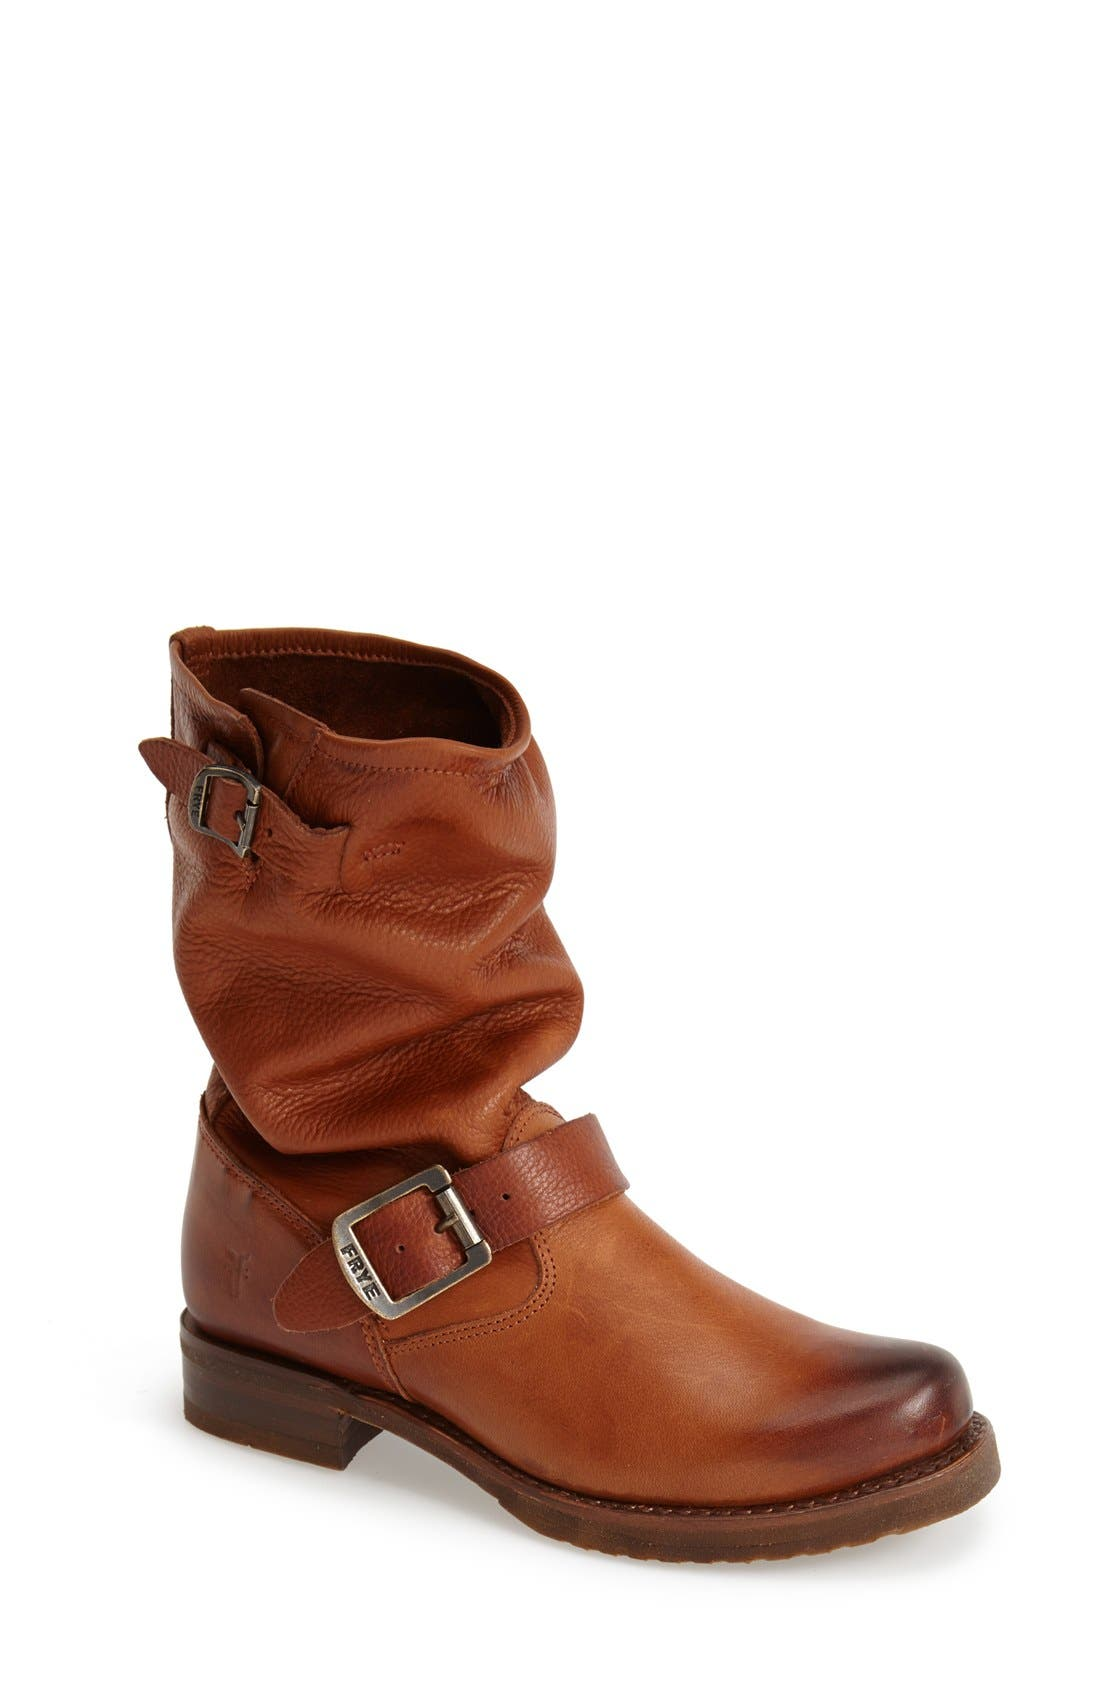 Alternate Image 1 Selected - Frye 'Veronica Shortie' Slouchy Boot (Women)